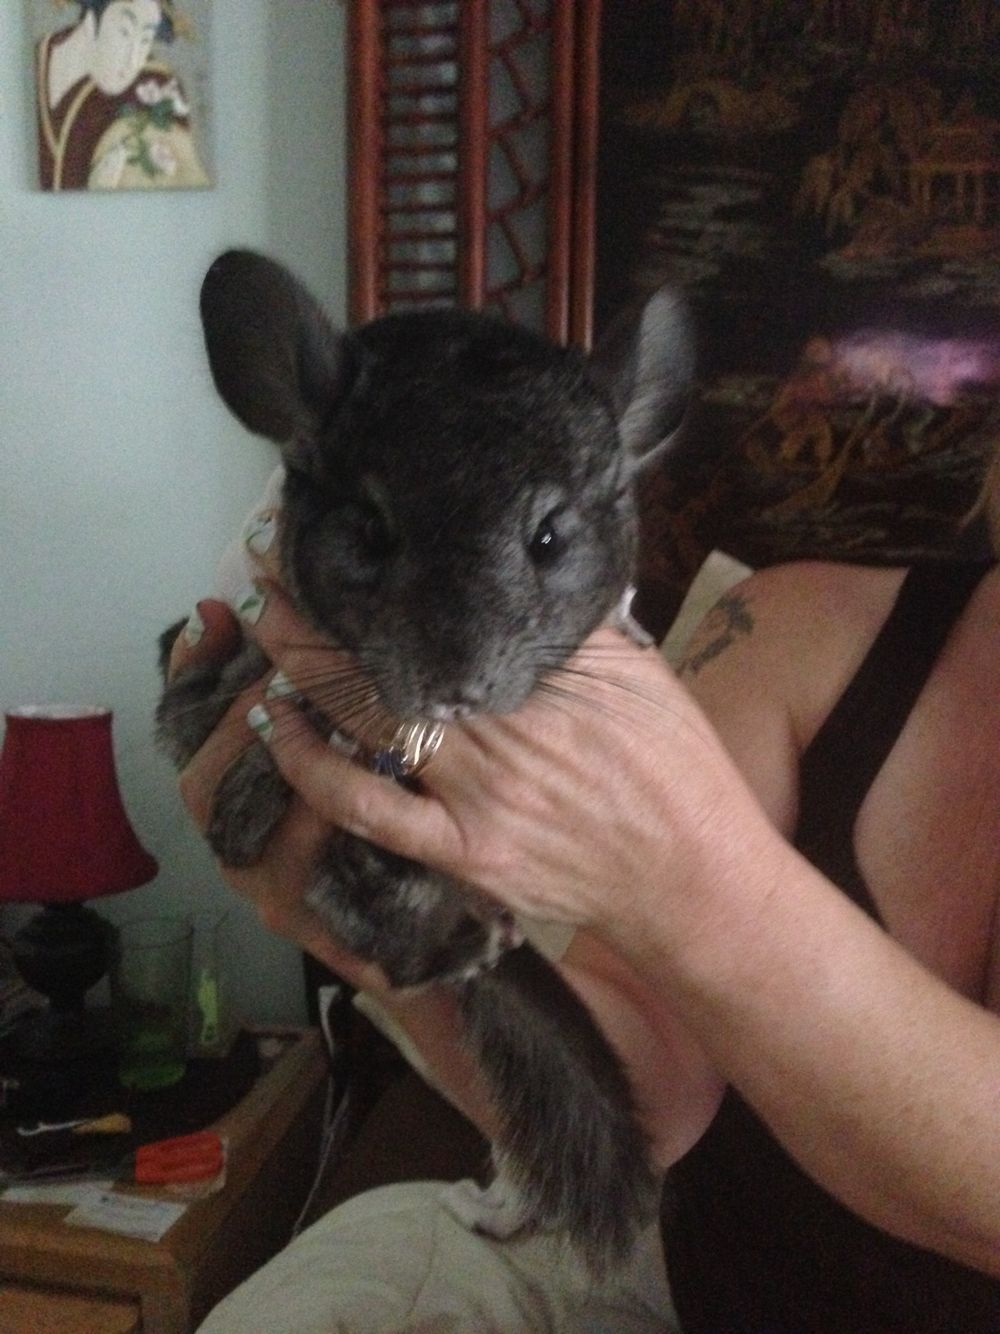 Chinchilla are great pets but need exercise and a good